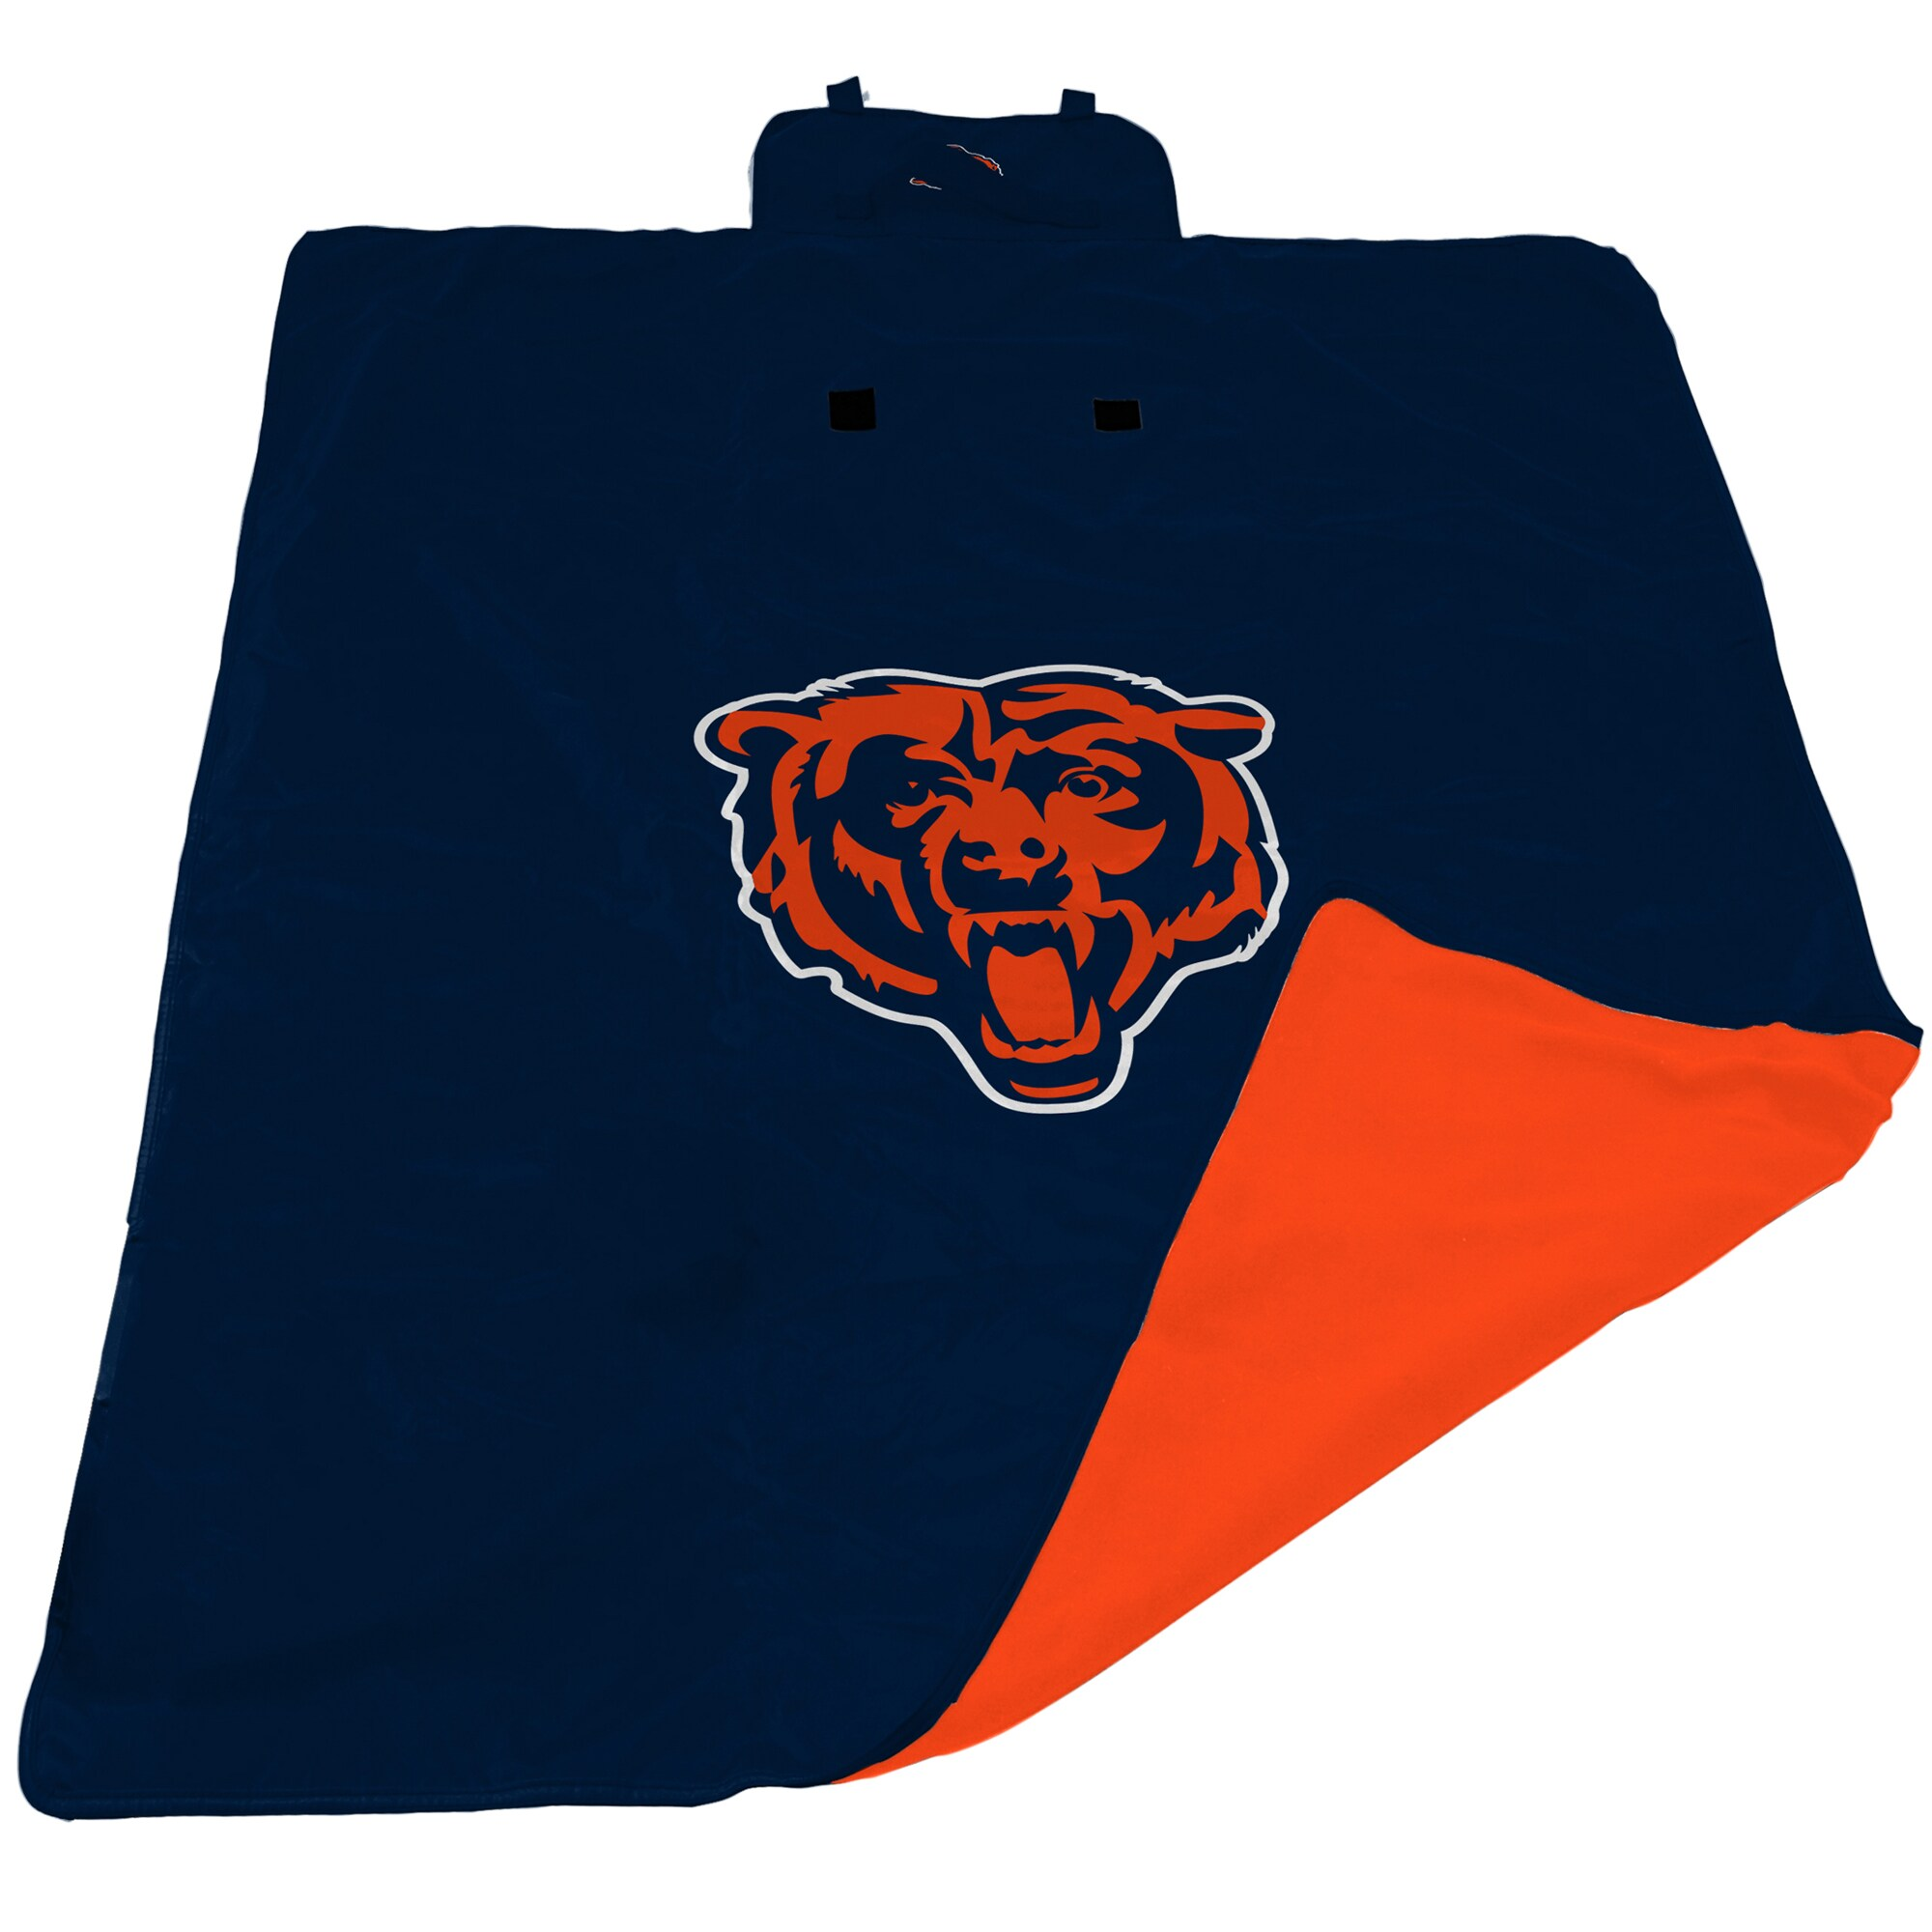 Chicago Bears 60'' x 80'' All-Weather XL Outdoor Blanket - Navy